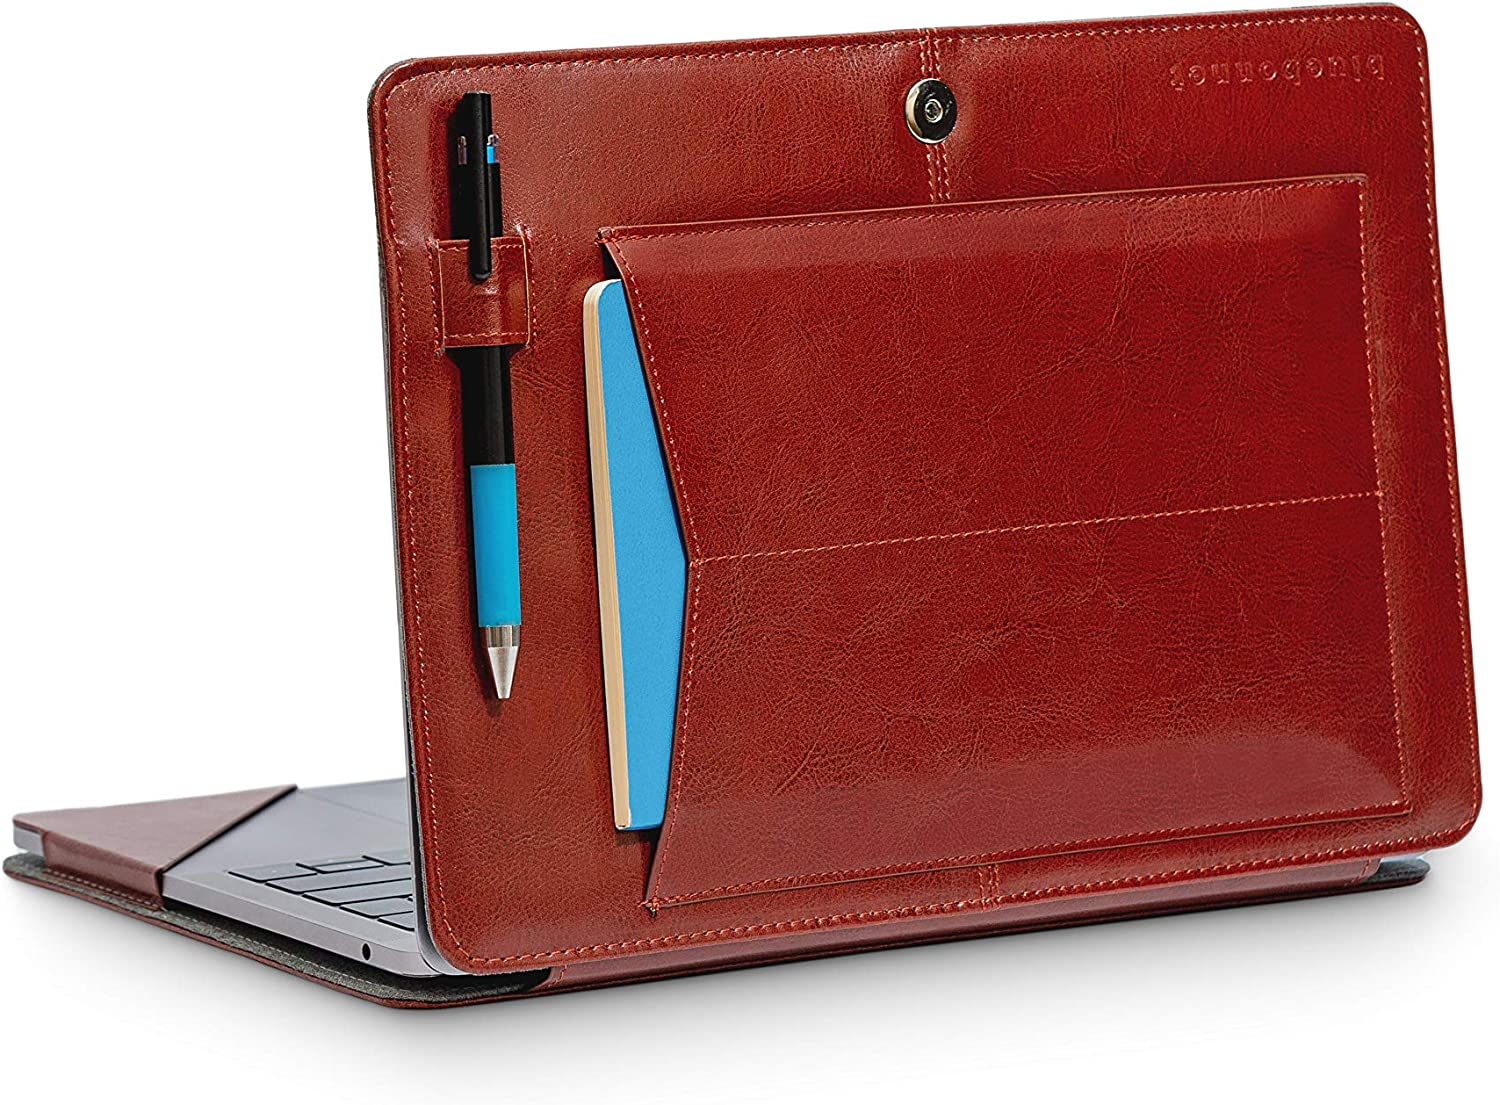 """Bluebonnet Leather MacBook 13"""" Pro & Air Case - 2016 2017 2018 2019 Release for A1932 A1706 A1708 A1989 A2159 A2179 with Exterior Pocket, Pen Holder, Magnetic Clasp Closure and Kickstand (Brown)"""